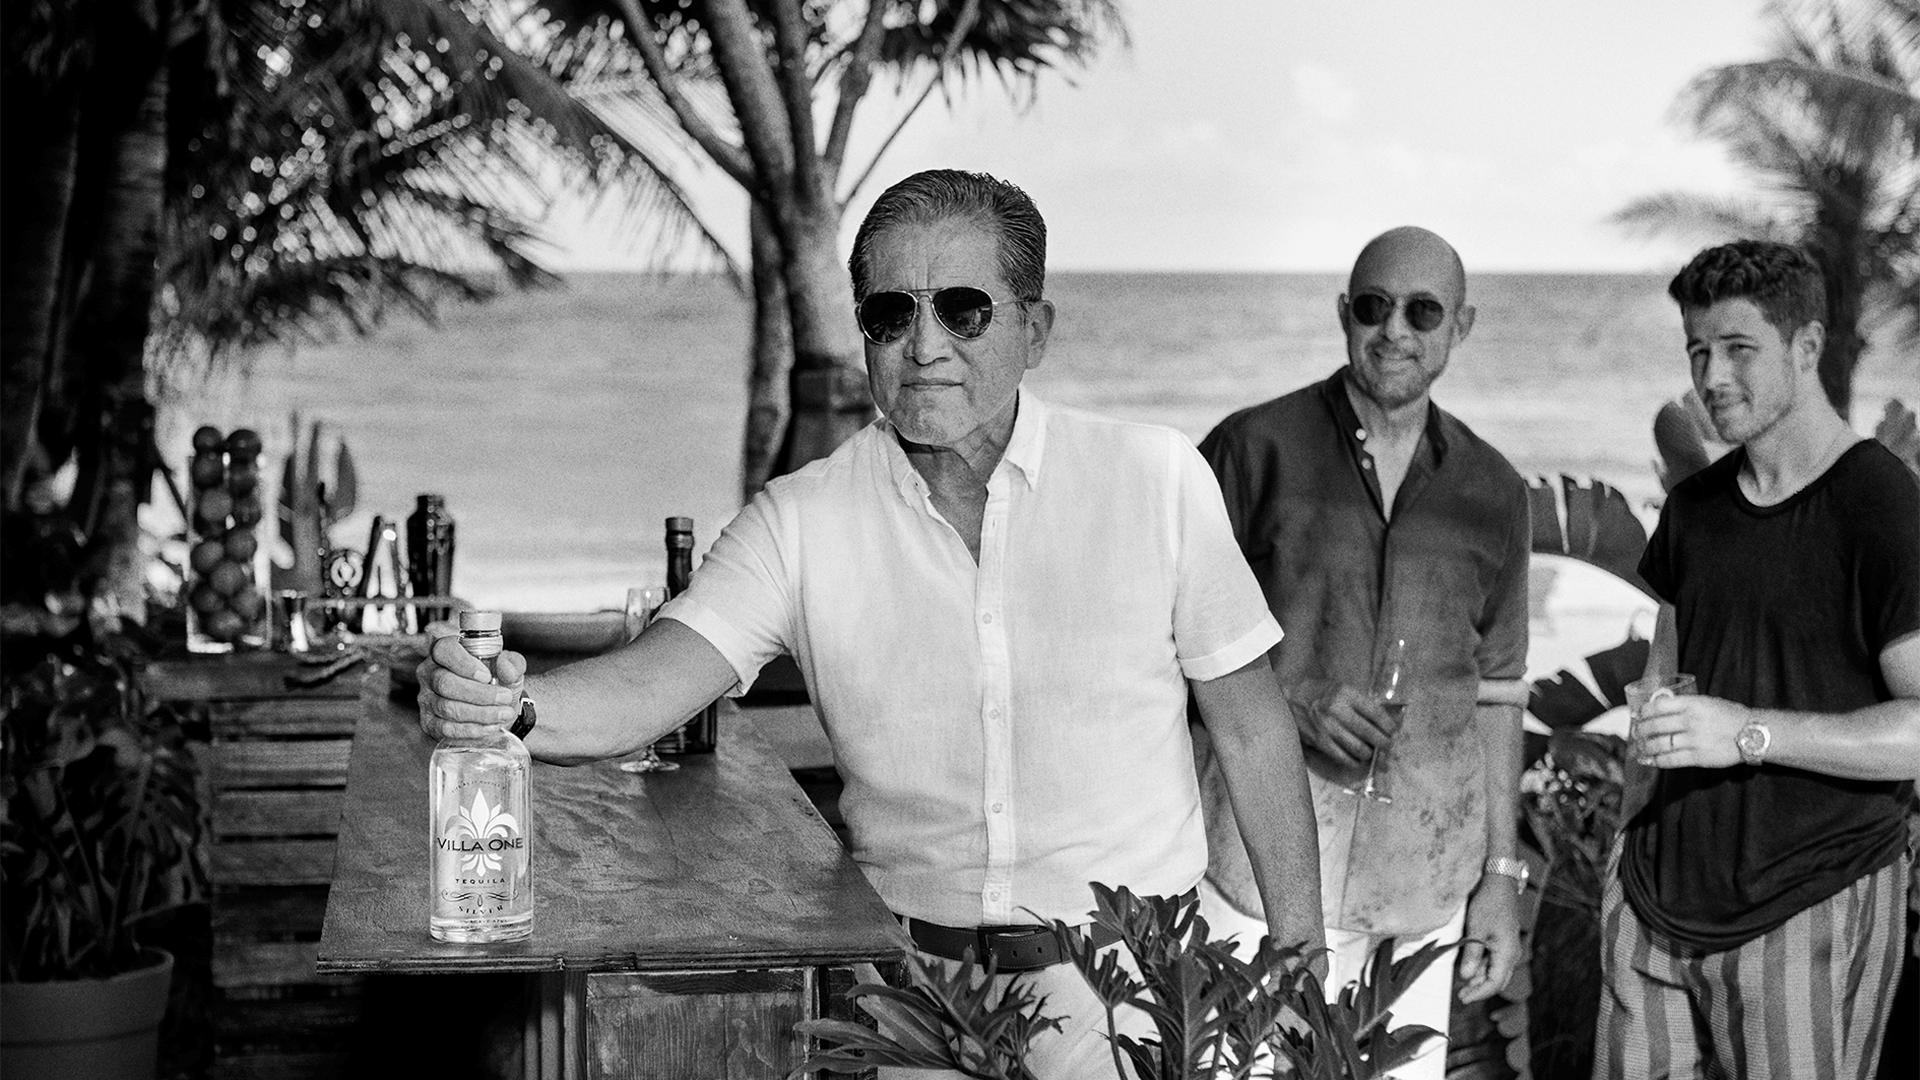 Arturo Fuentes, Godfather of Tequila, along with Nick Jonas and John Varvatos | Villa One Tequila